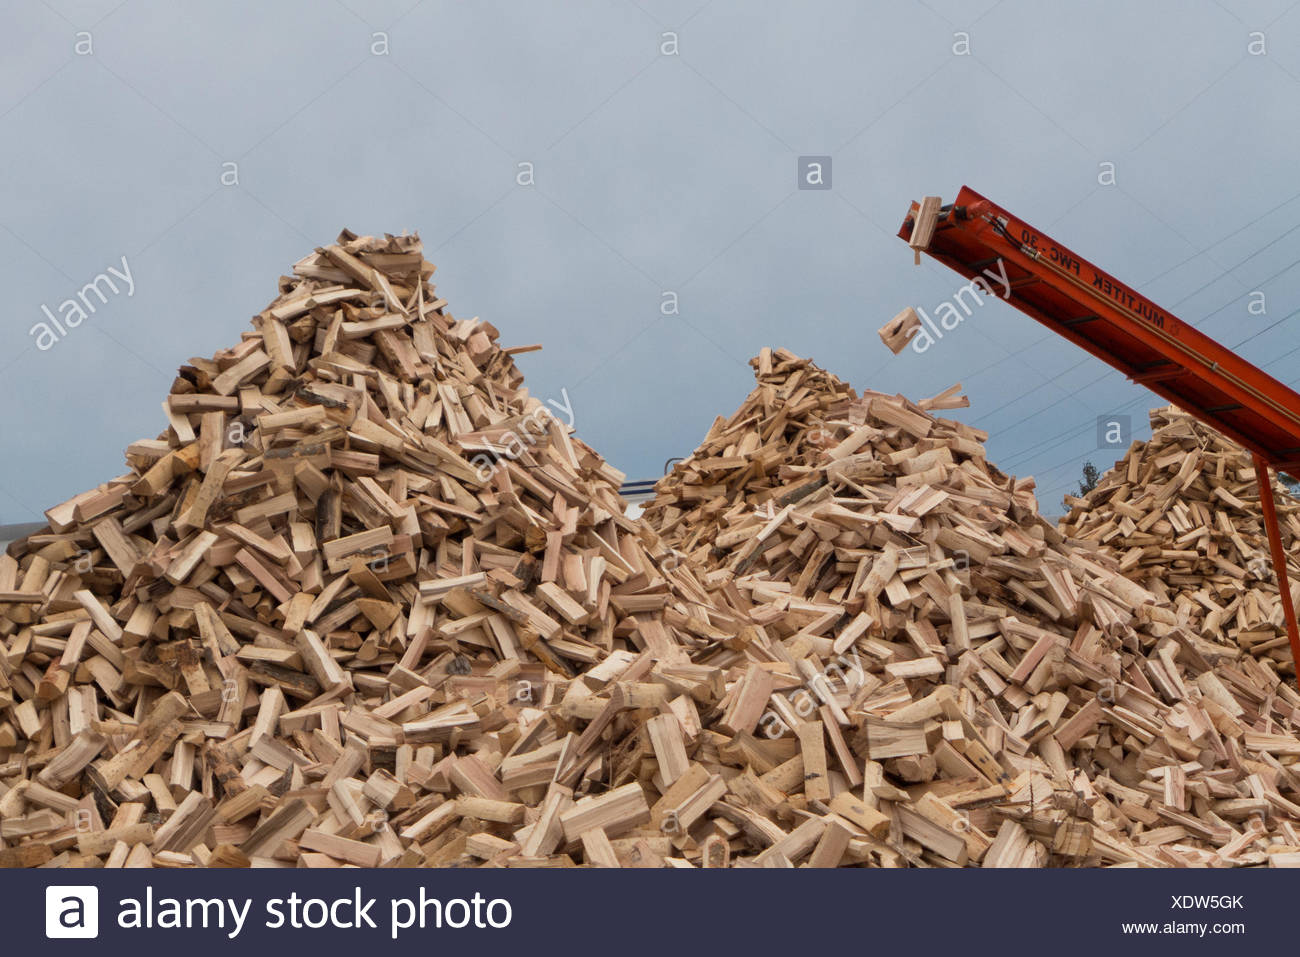 Wood is dropped from a conveyor belt onto a large firewood pile. - Stock Image